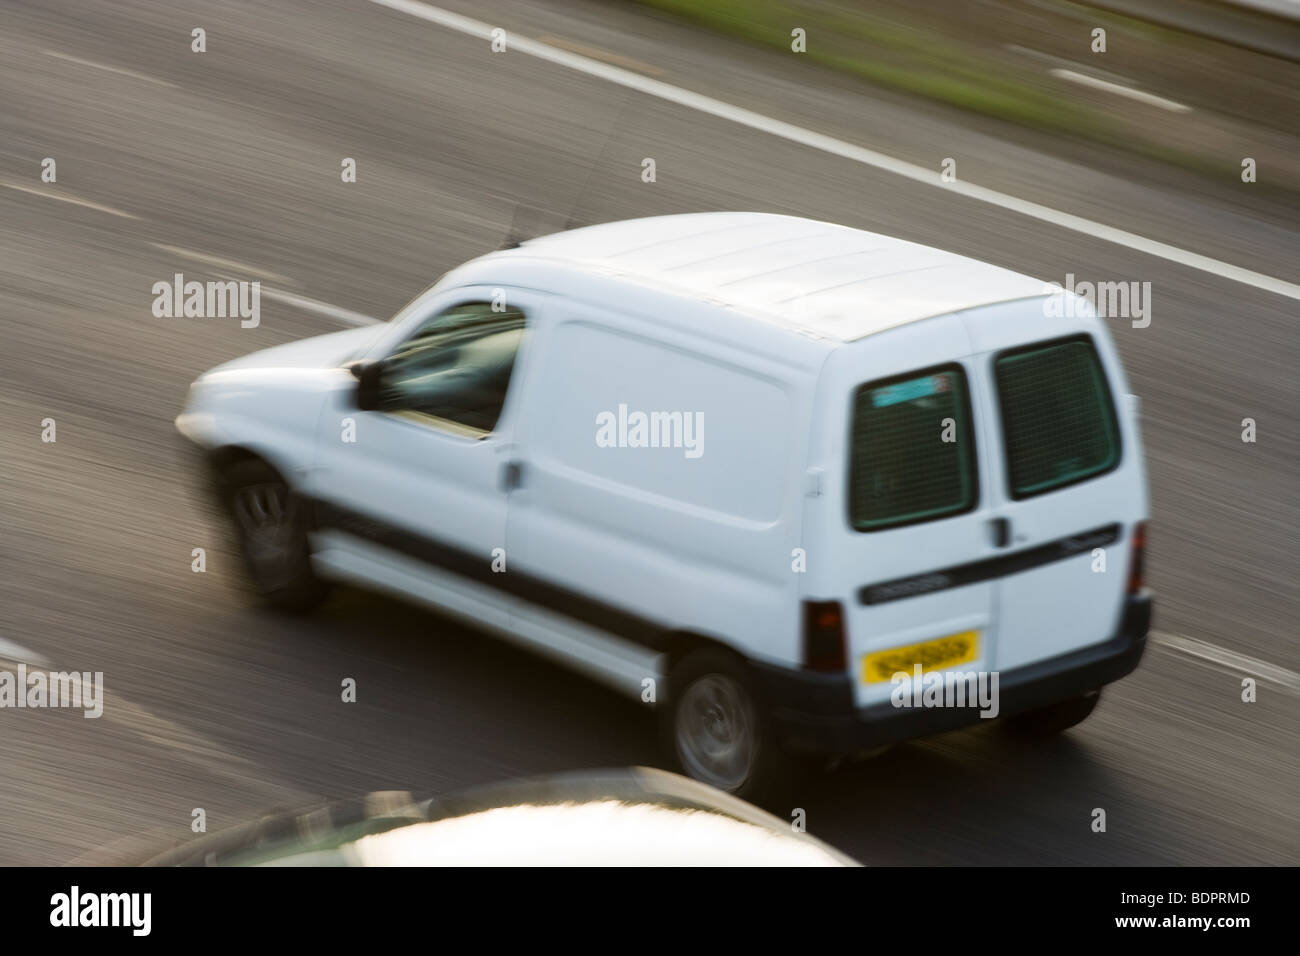 White van on motorway. UK - Stock Image